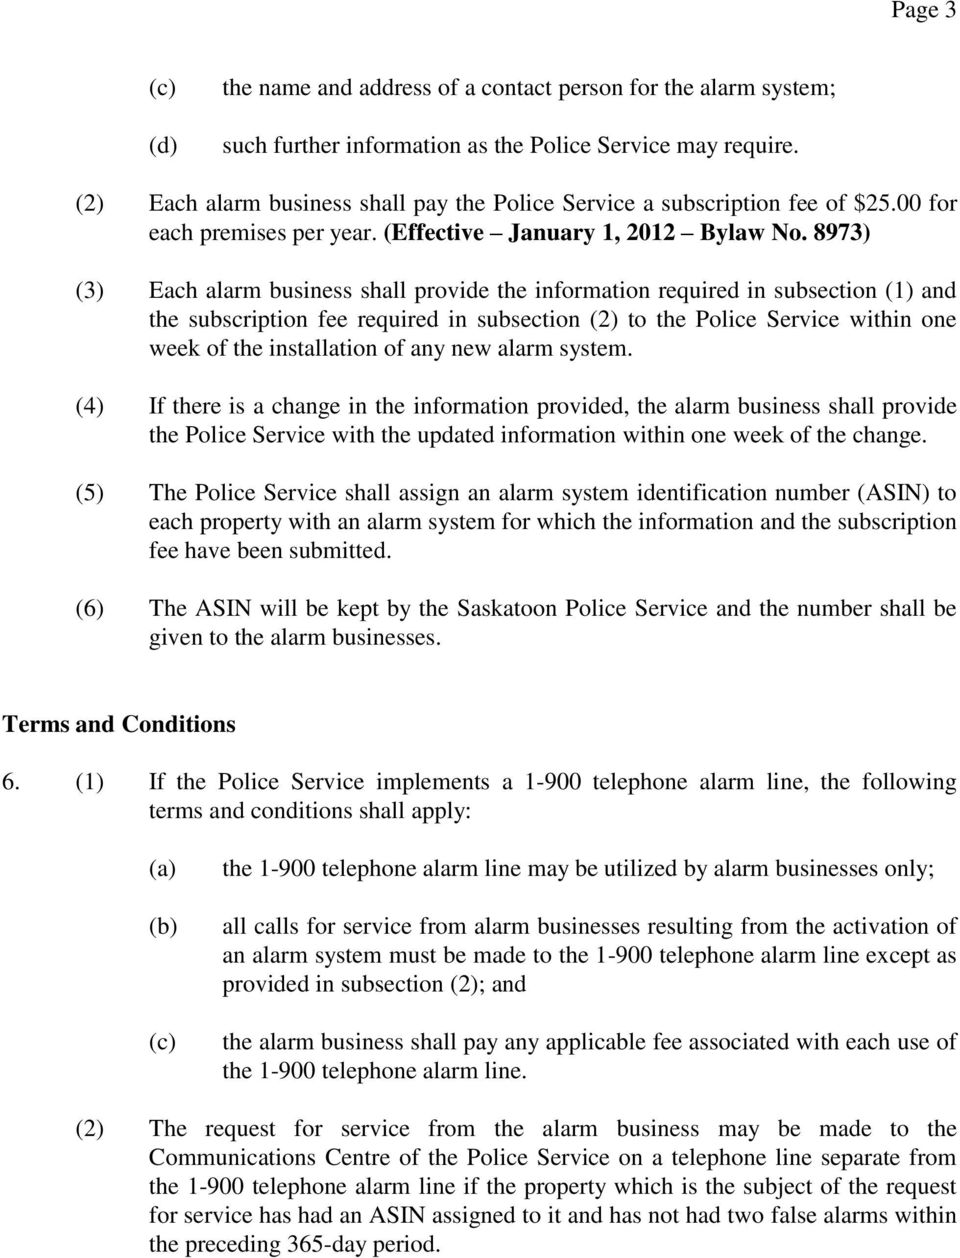 8973) (3) Each alarm business shall provide the information required in subsection (1) and the subscription fee required in subsection (2) to the Police Service within one week of the installation of